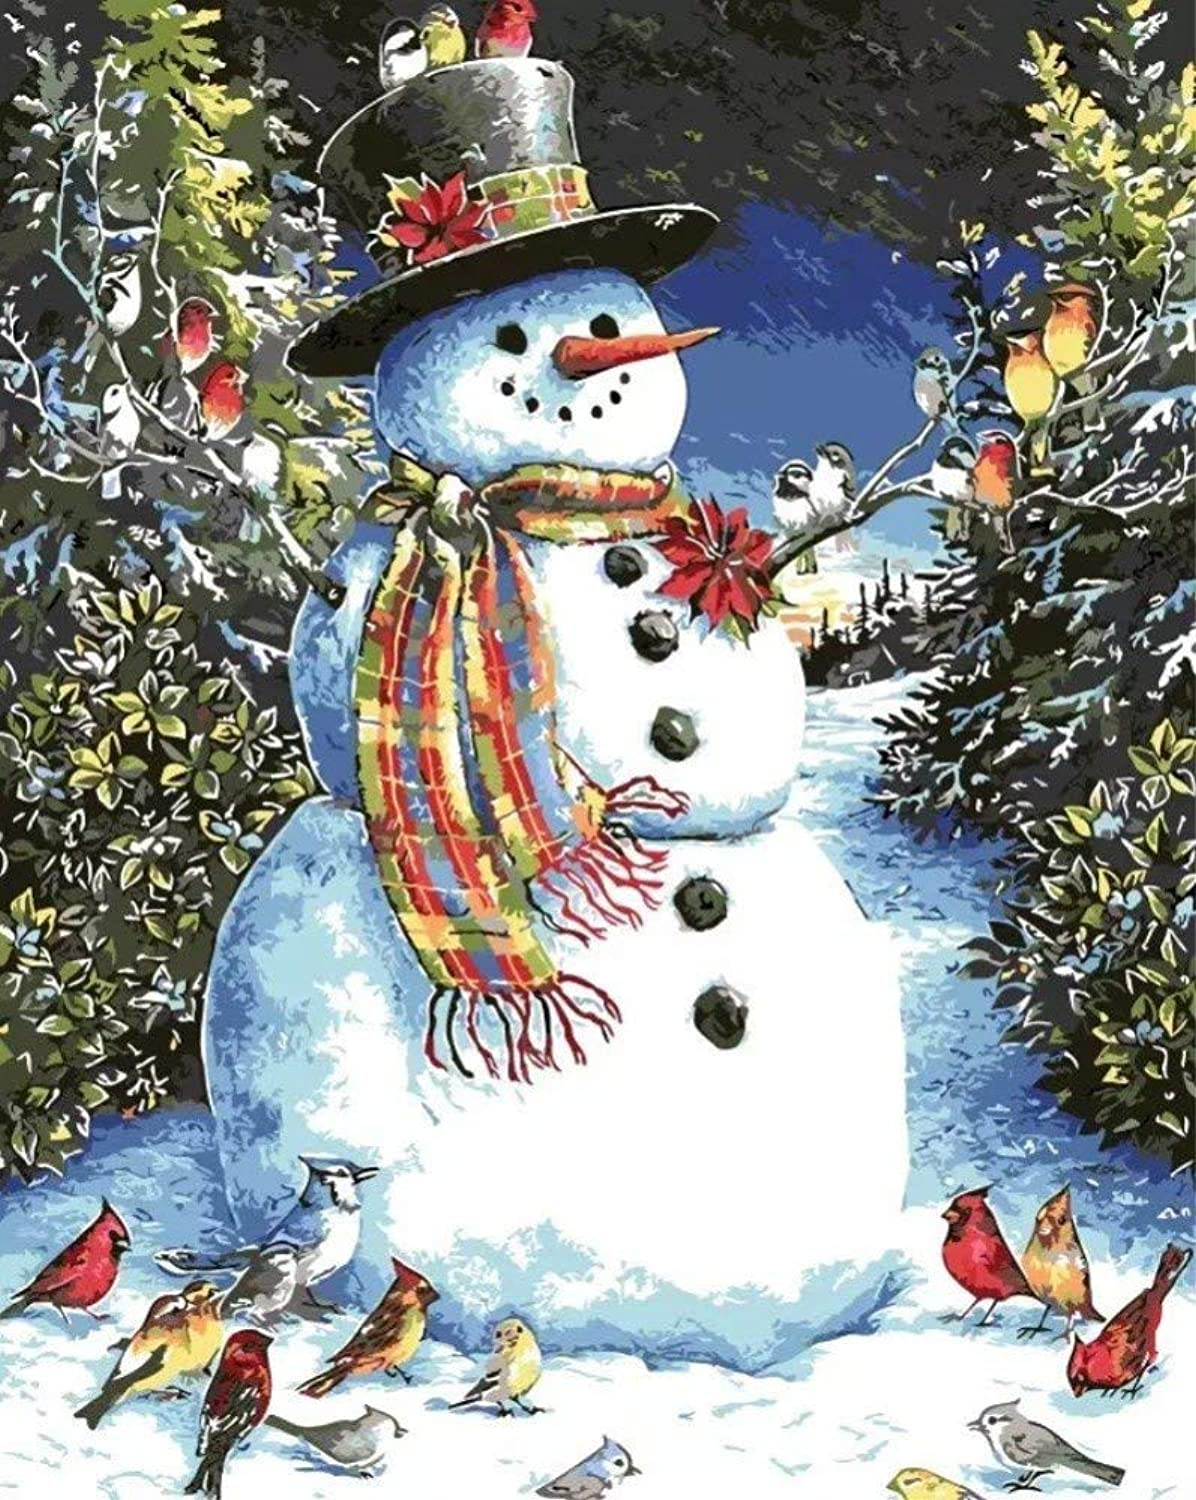 Malen Sie Nach Zahlen Für Erwachsene DIY Winter Winter Winter Snow_ Snowman & Birds_ Frohe Weihnachten Mit Bürsten Home Decoration 40x50cm with Combination Frame B07NHLNVPG | Förderung